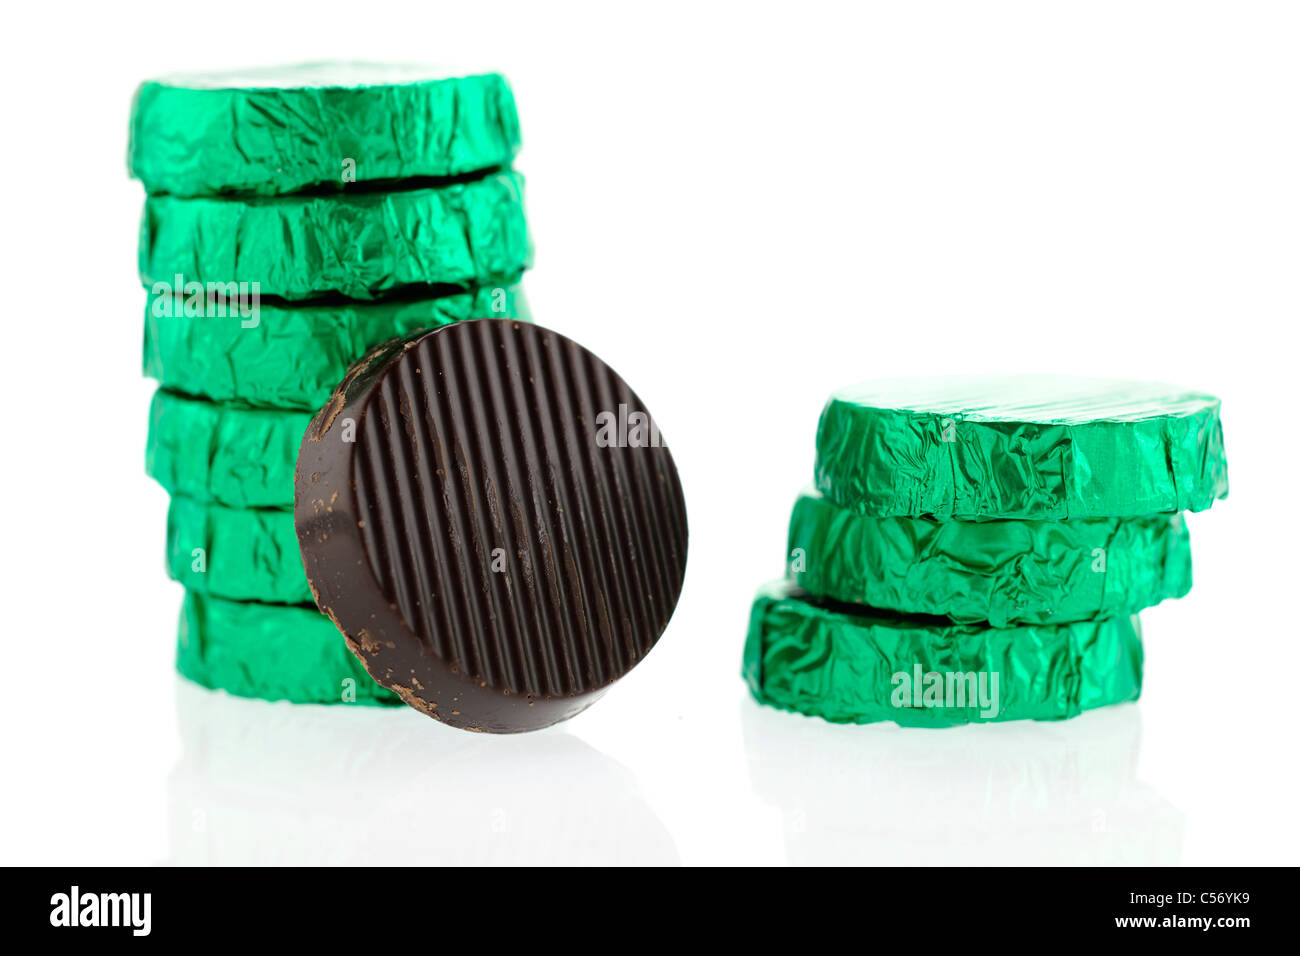 Green silver foil wrapped mint dark chocolates - Stock Image